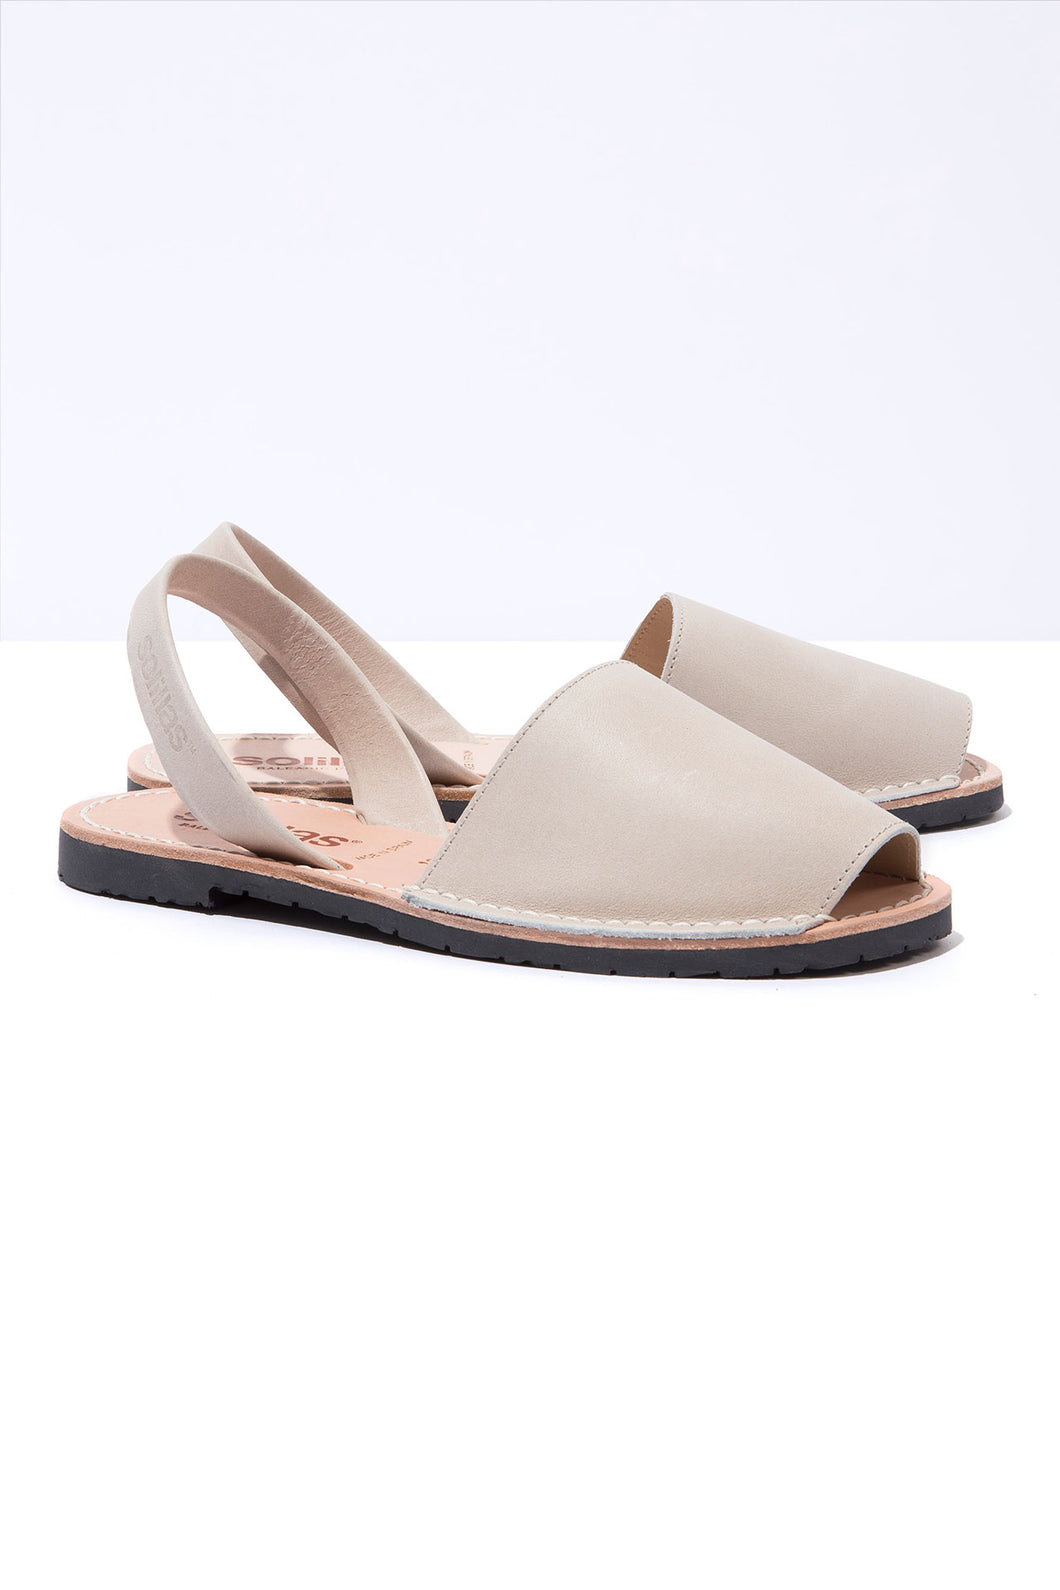 Cream Nubuck Solillas Sandals - Size 10